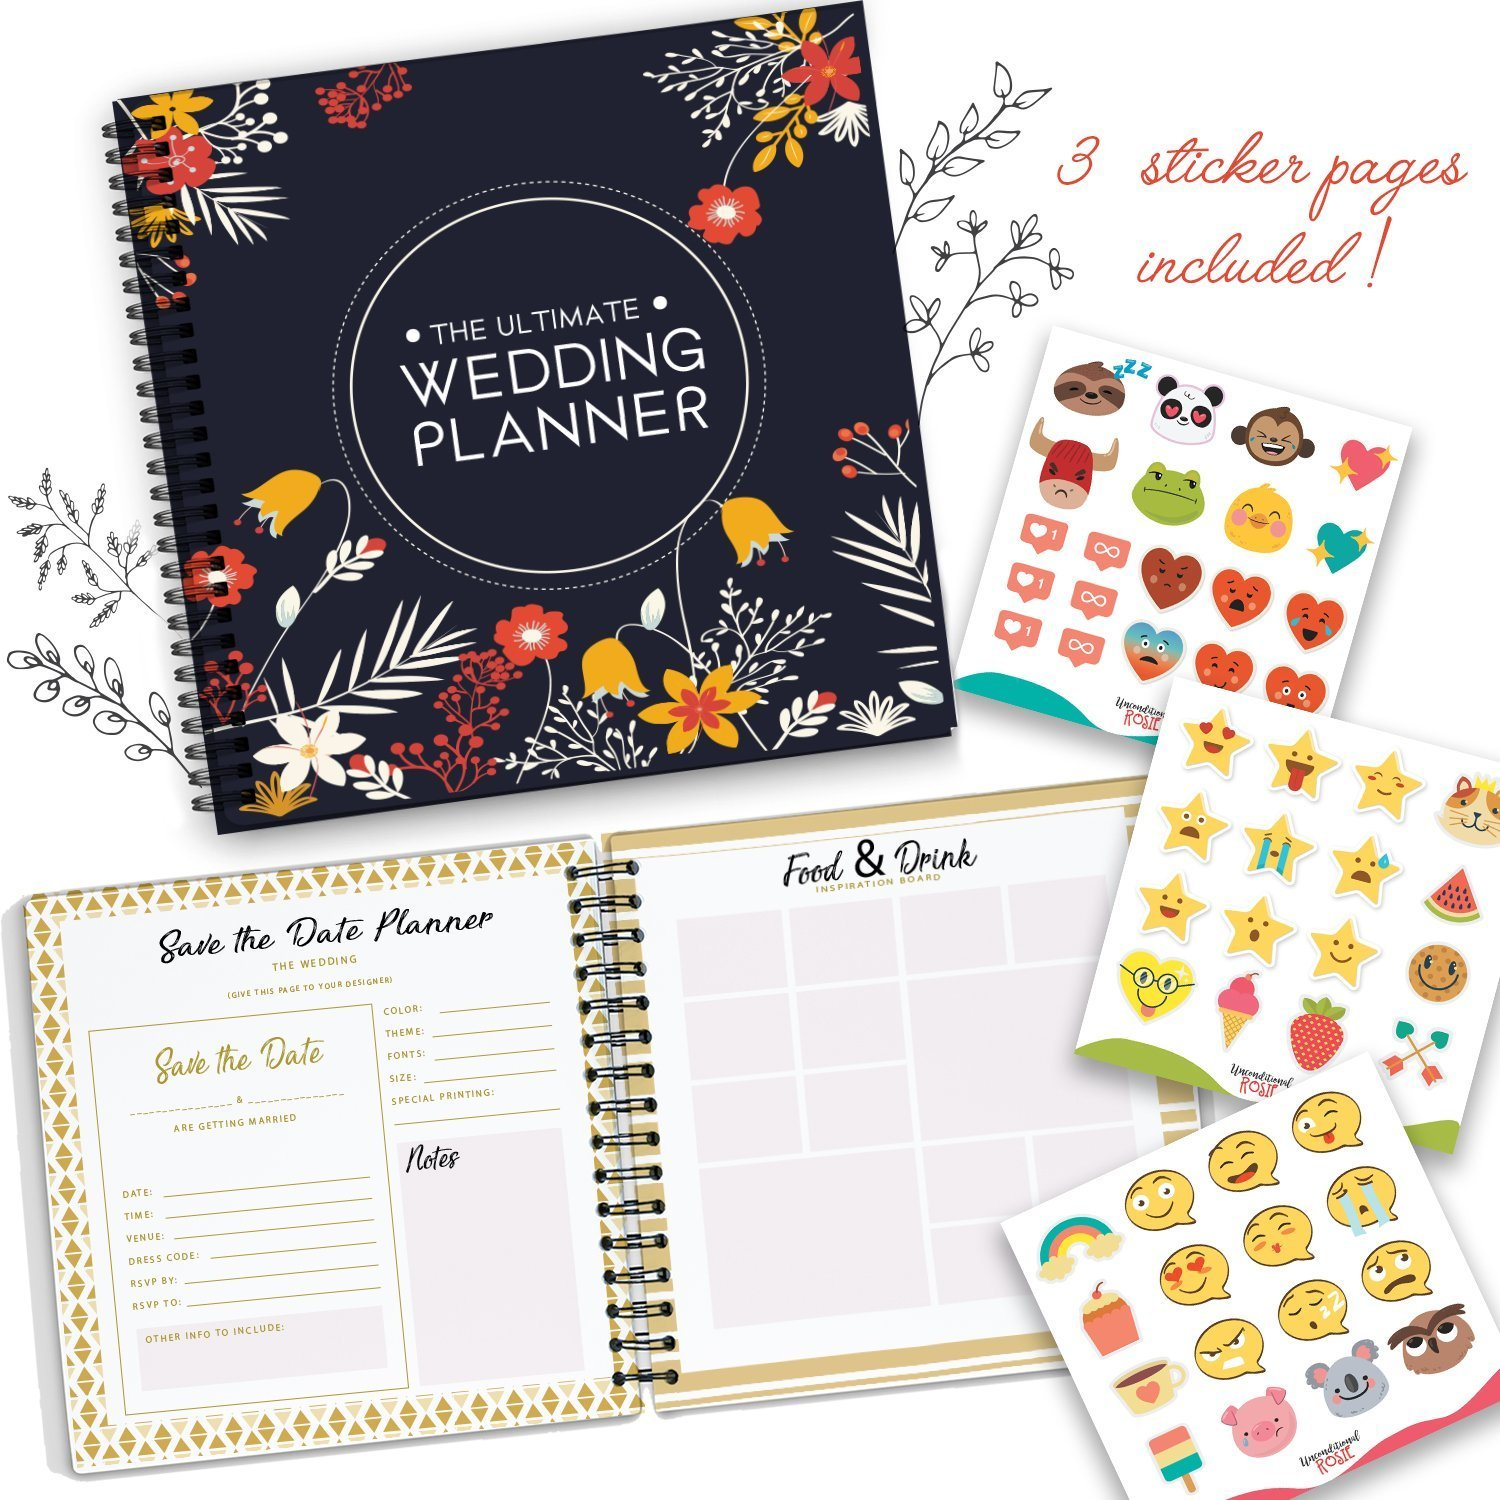 The Ultimate Wedding Planner – A Complete 80 Pages Hardcover Organizer that Includes Checklists, Party Planner, Budget Organizer, Honeymoon and More to Help You Organize The Wedding of Your Dreams! by Unconditional Rosie (Image #3)